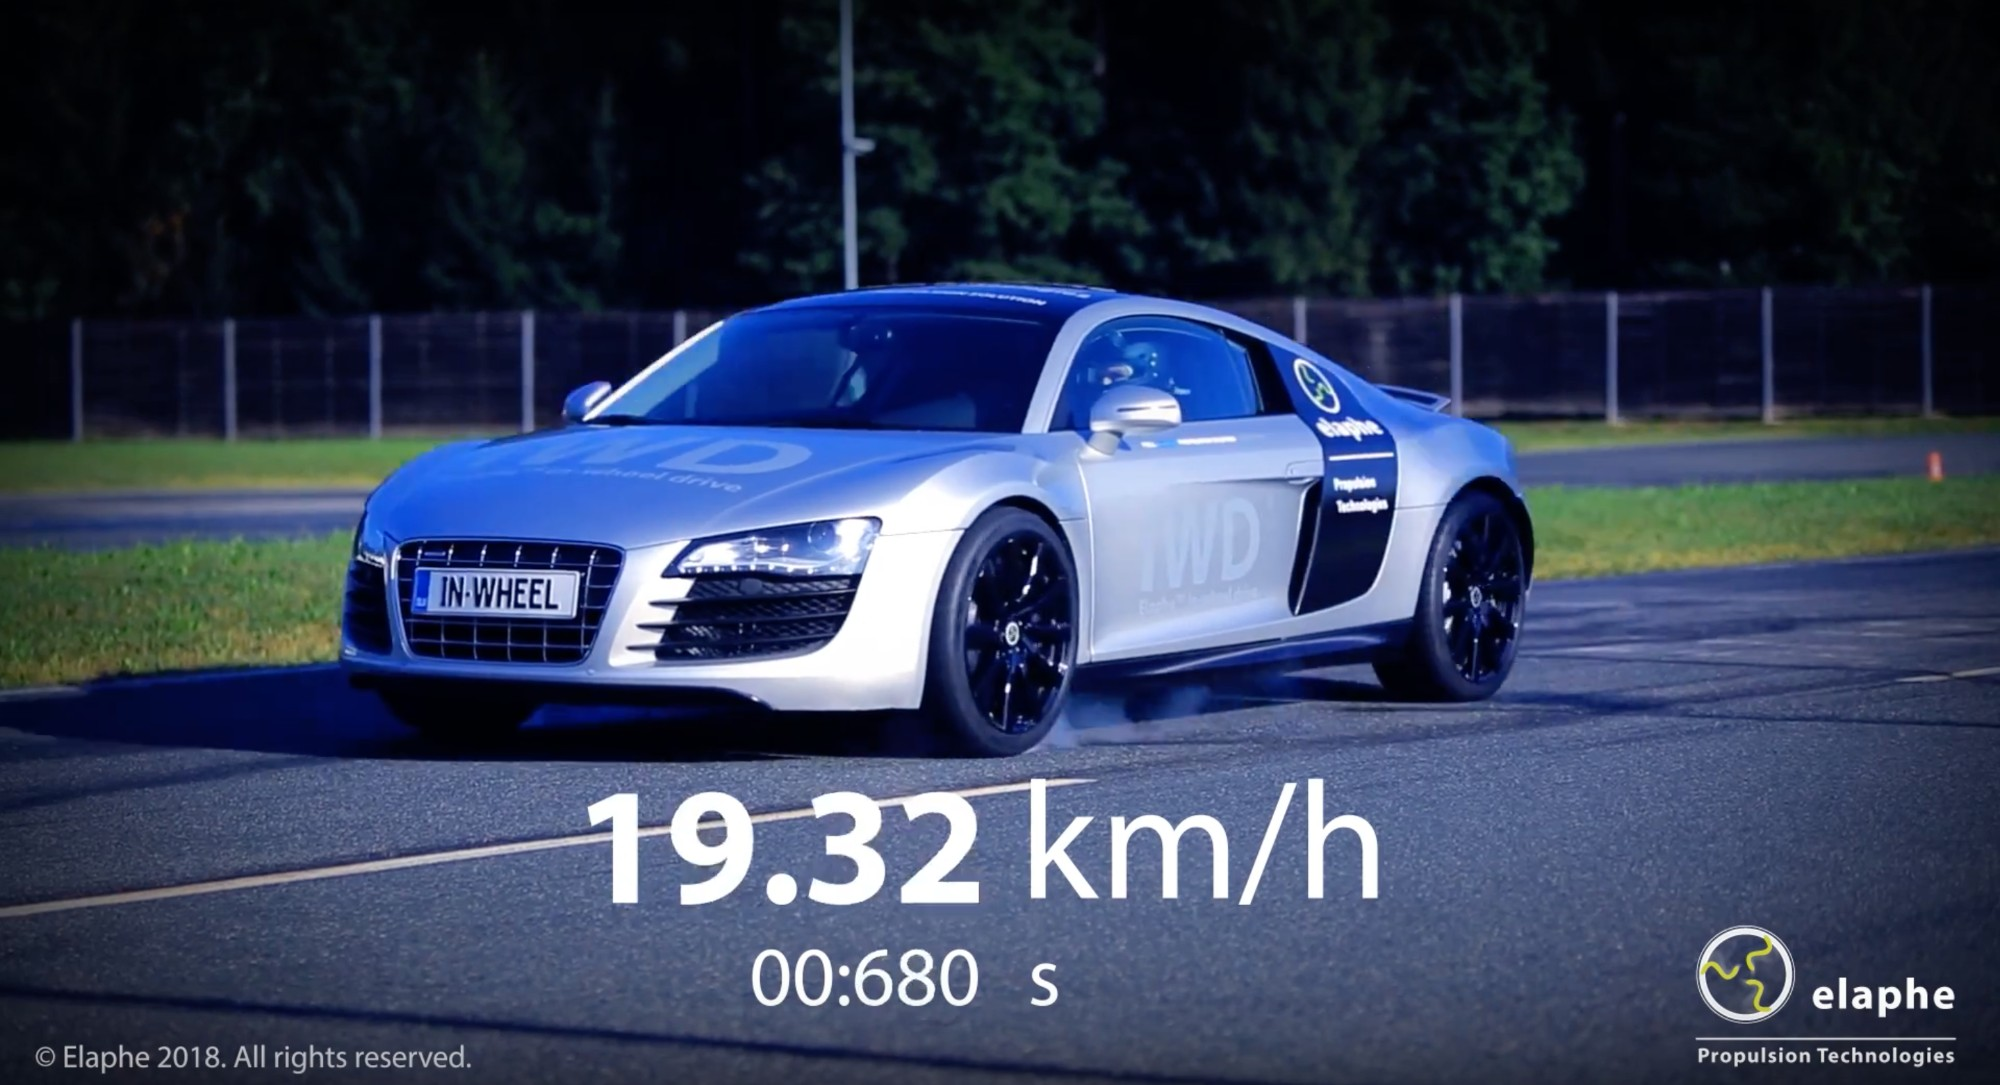 Elaphe Propulsion's R8 Is Not Mid-Engined - In Fact It Has No Engine